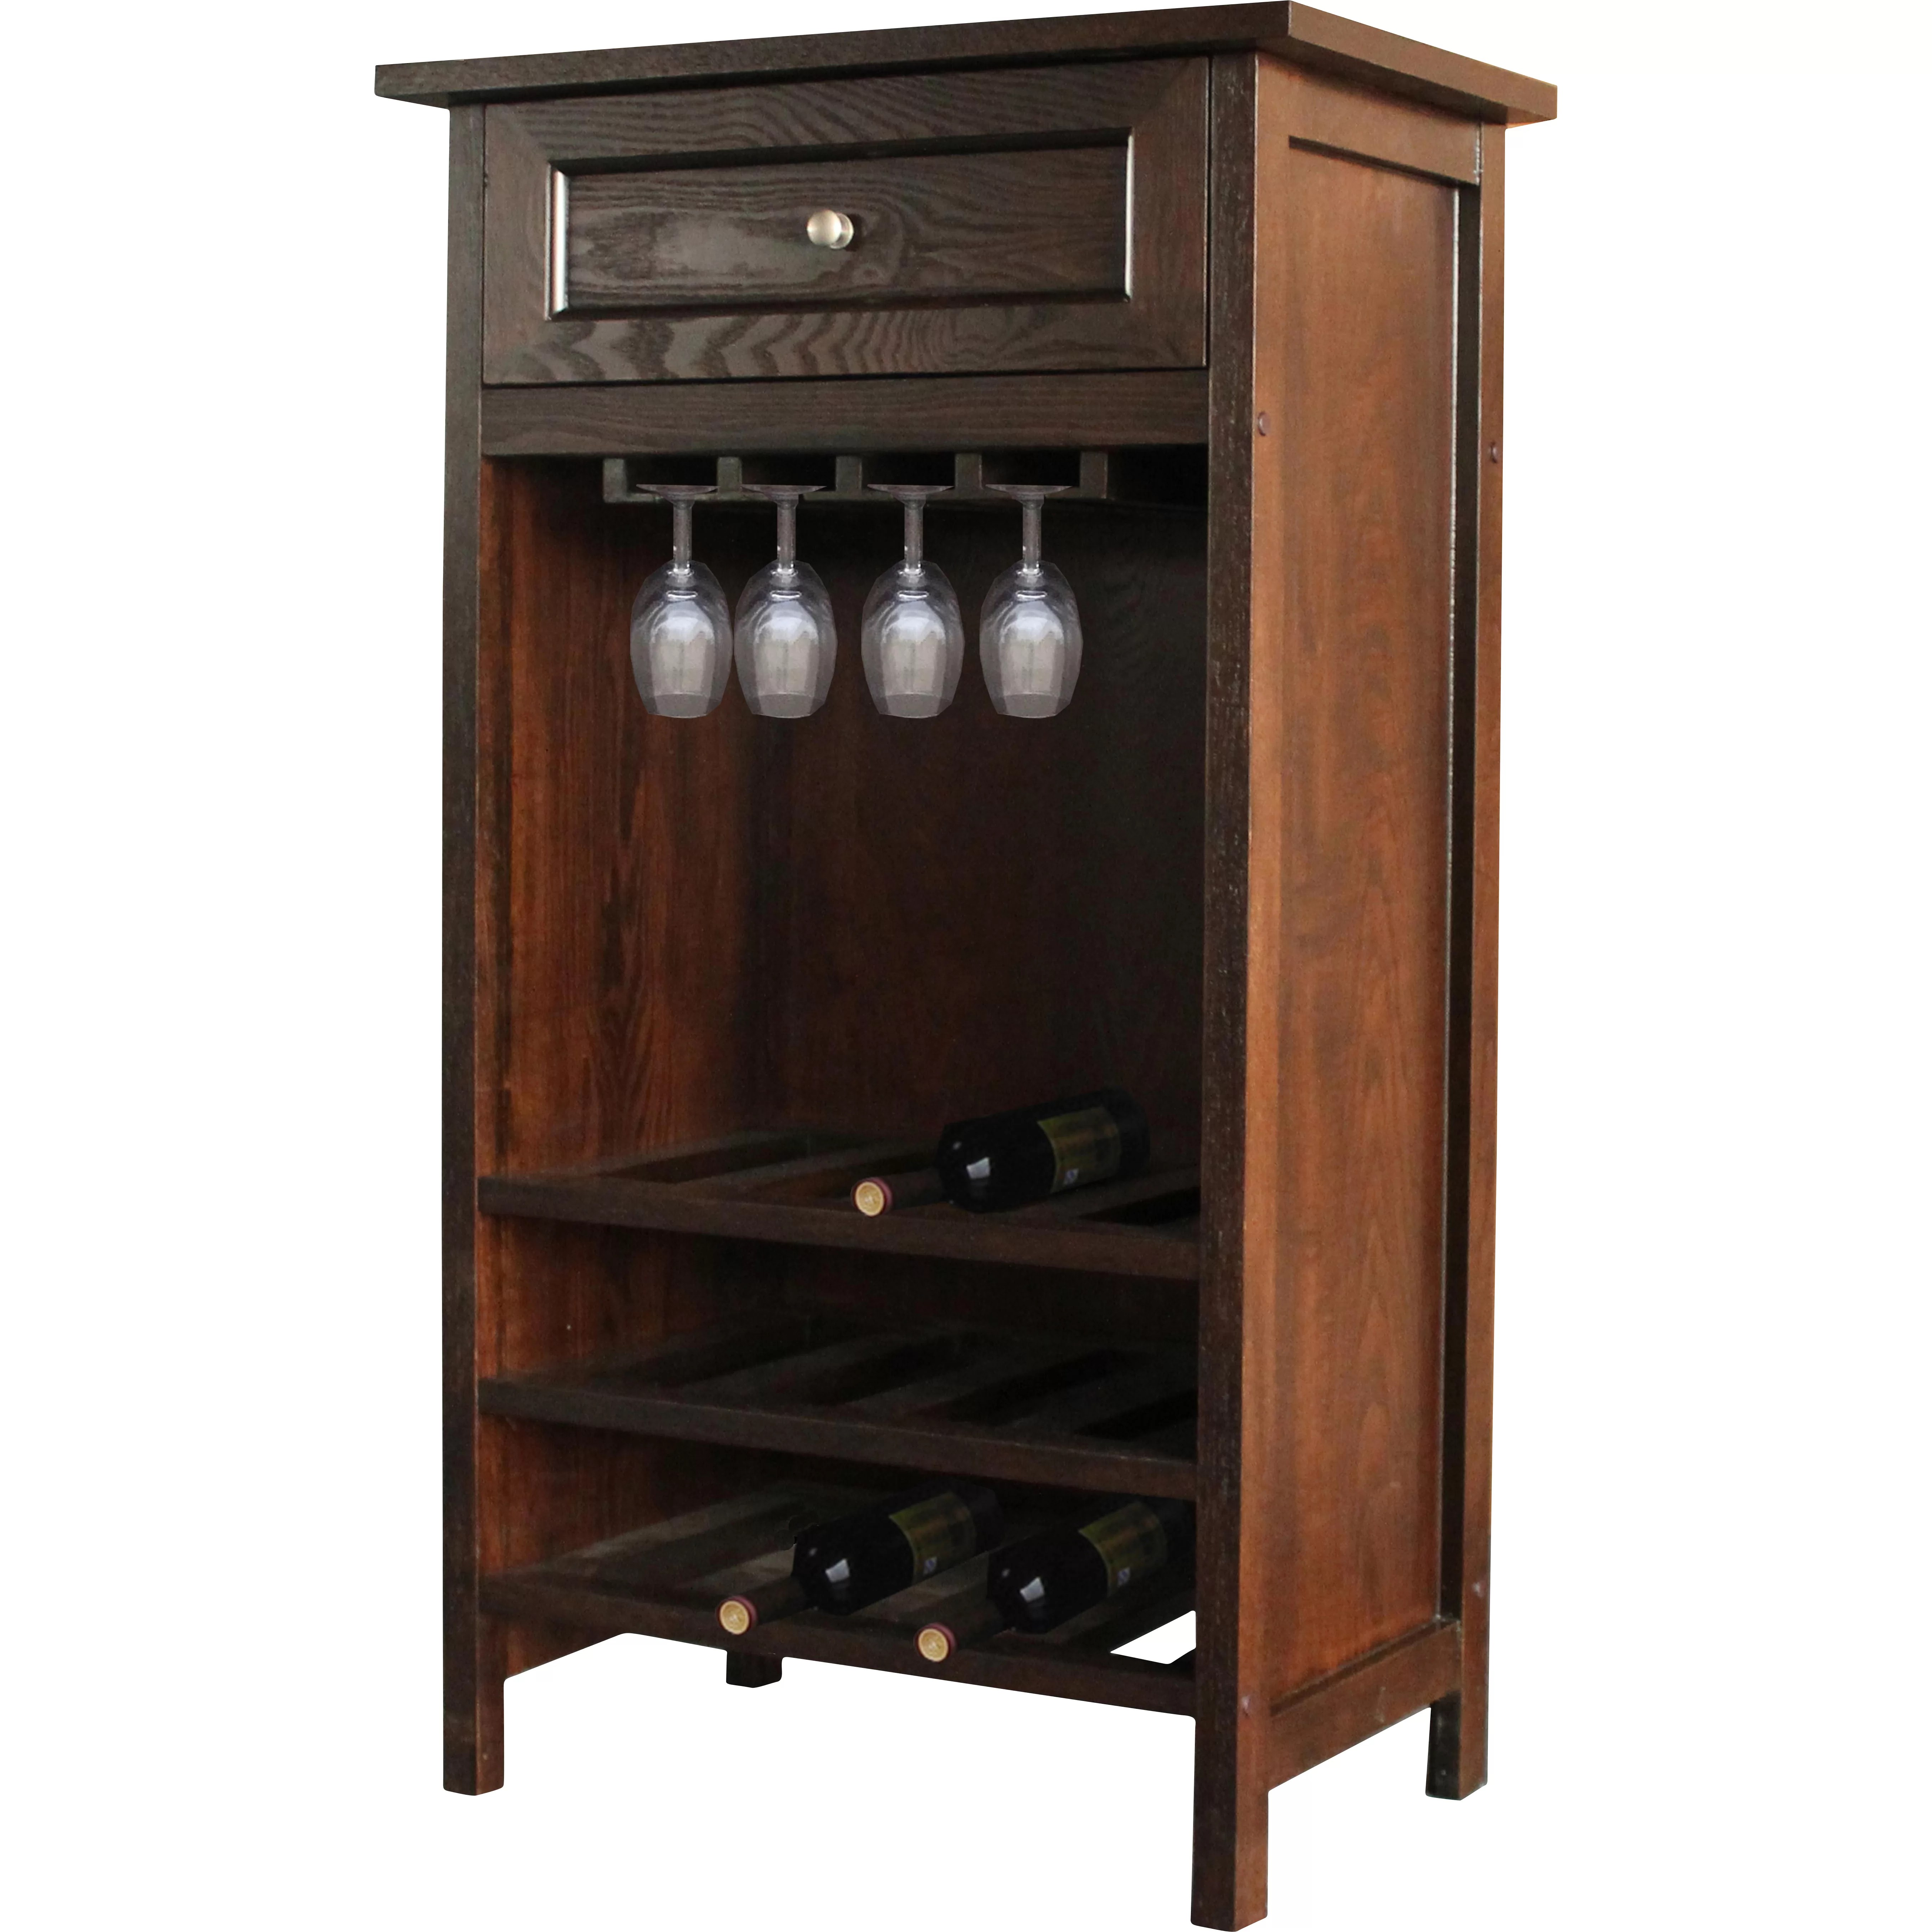 In Floor Wine Storage Jenlea 12 Bottle Floor Wine Rack And Reviews Wayfair